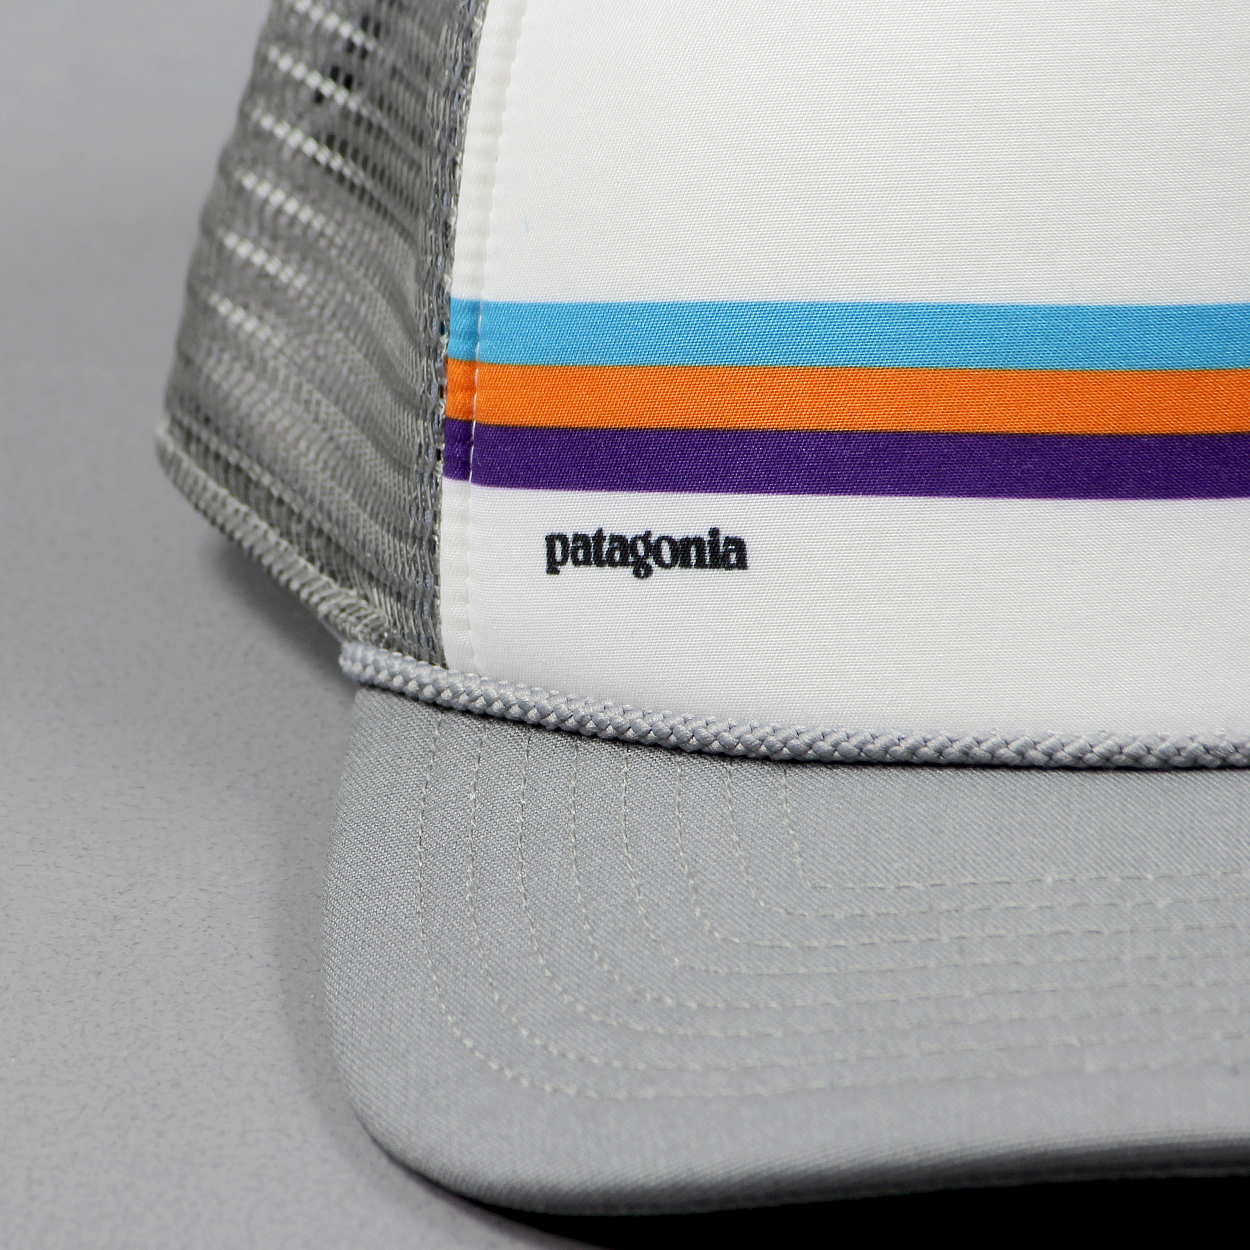 8937fbf9 A new style for 2016 Patagonia's Fitz Roy Bar Interstate Trucker has some  ace coloured stripes across it and a Feather Grey and White contrast that  we dig!